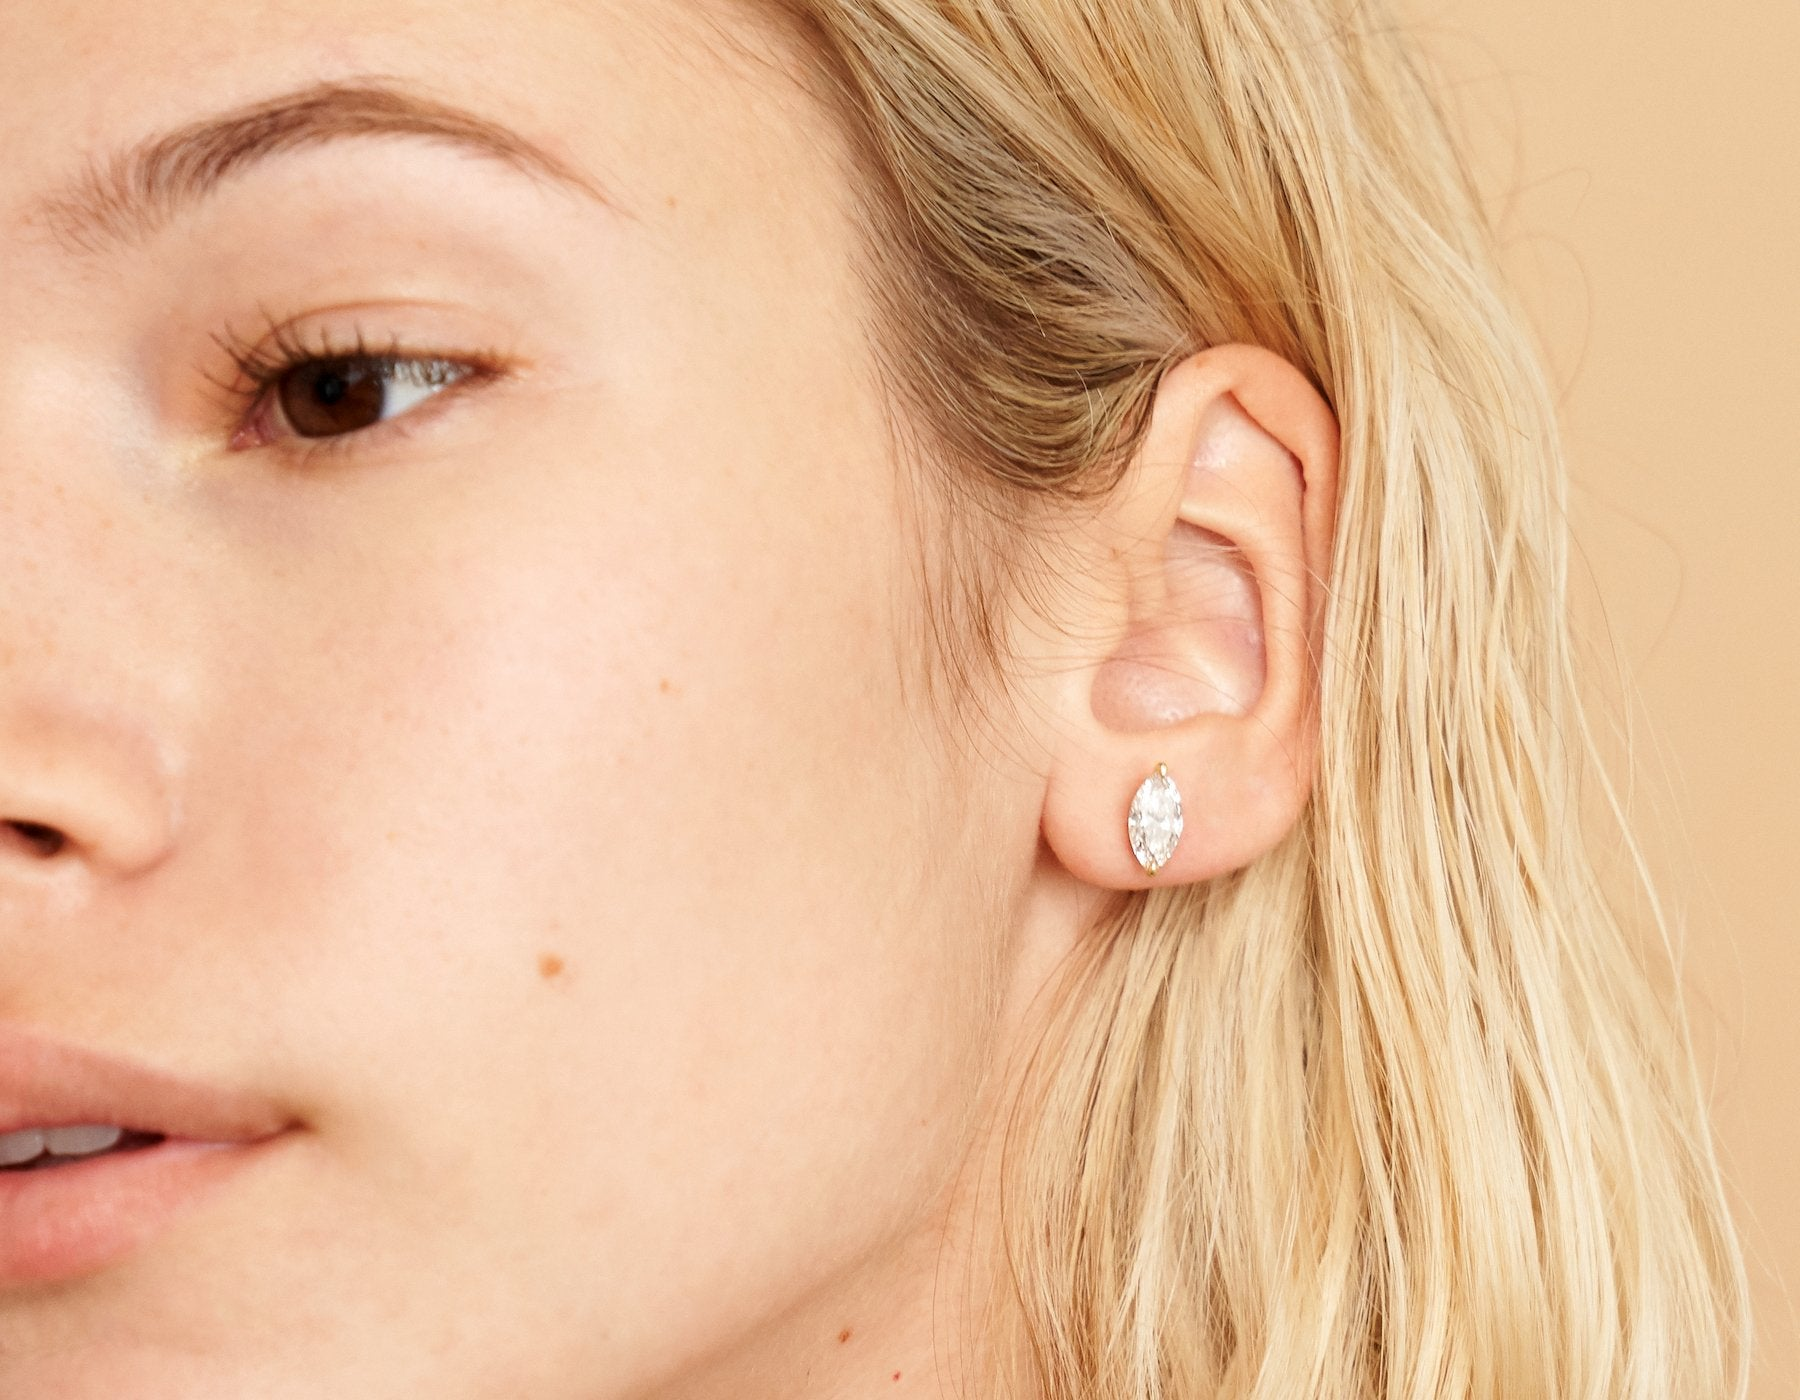 Model wearing Vrai 14K solid gold solitaire marquise diamond studs earrings 1ct minimalist delicate, 14K White Gold